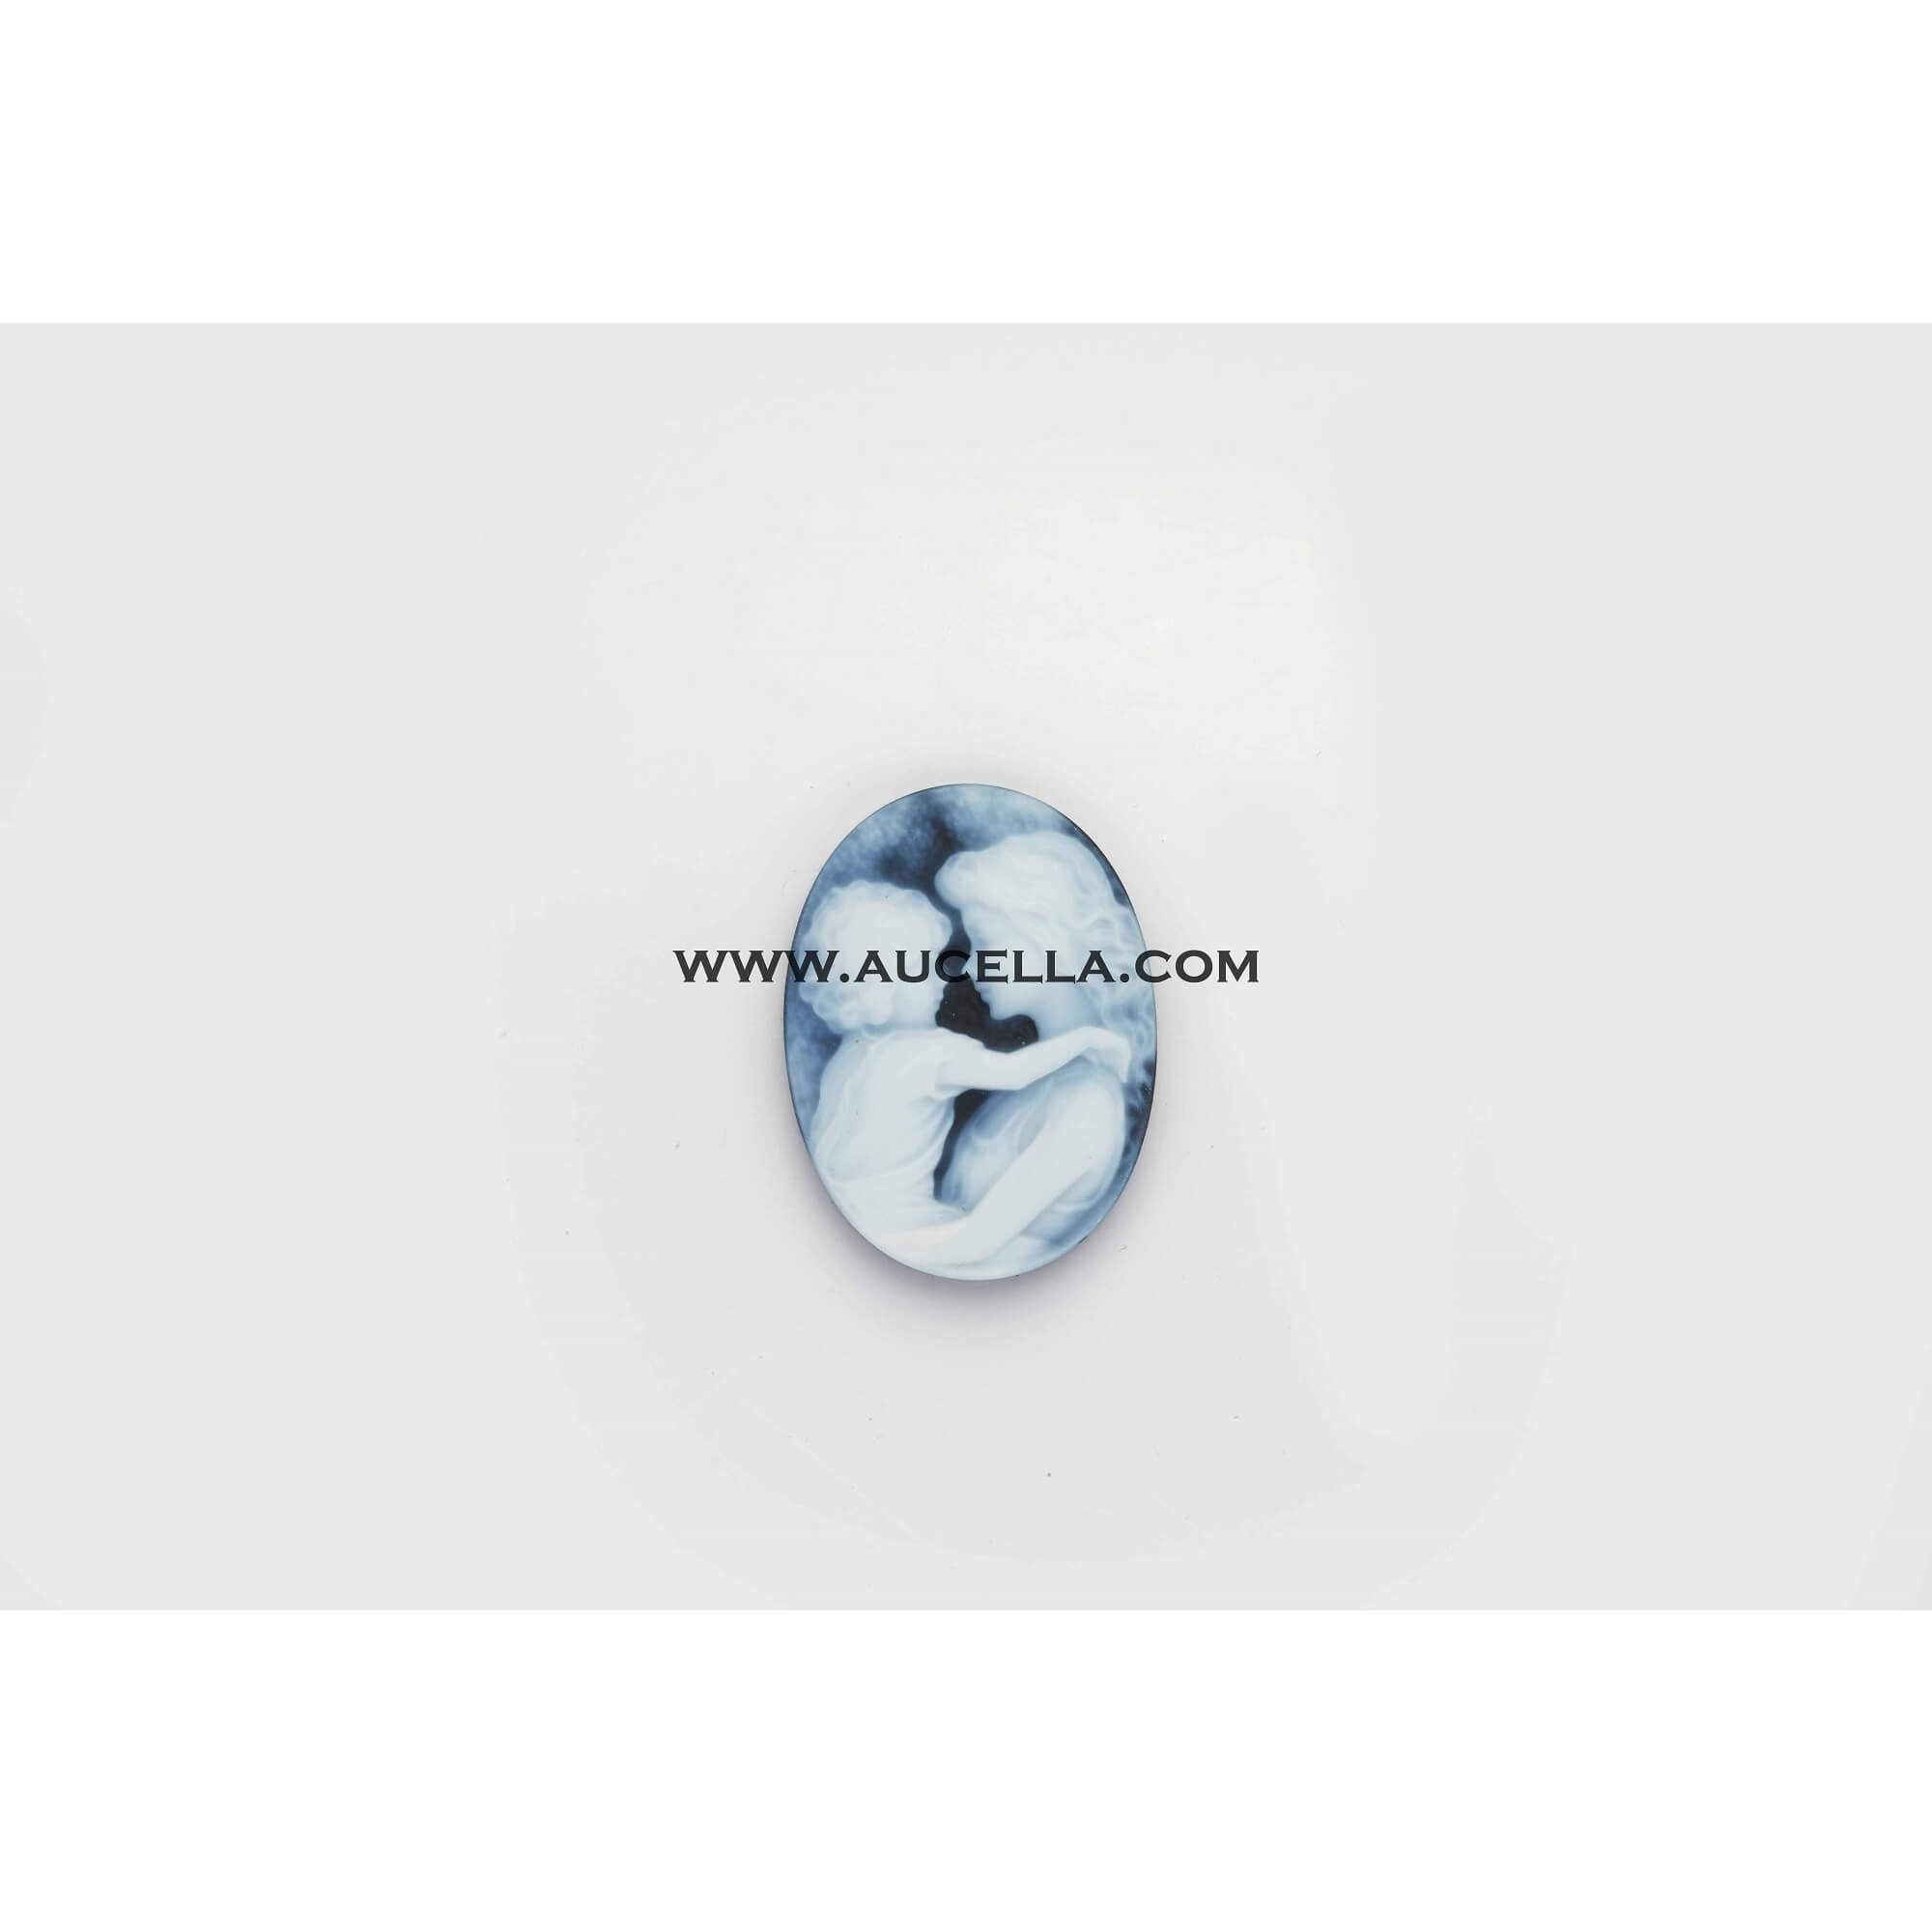 Agate cameo 30mm